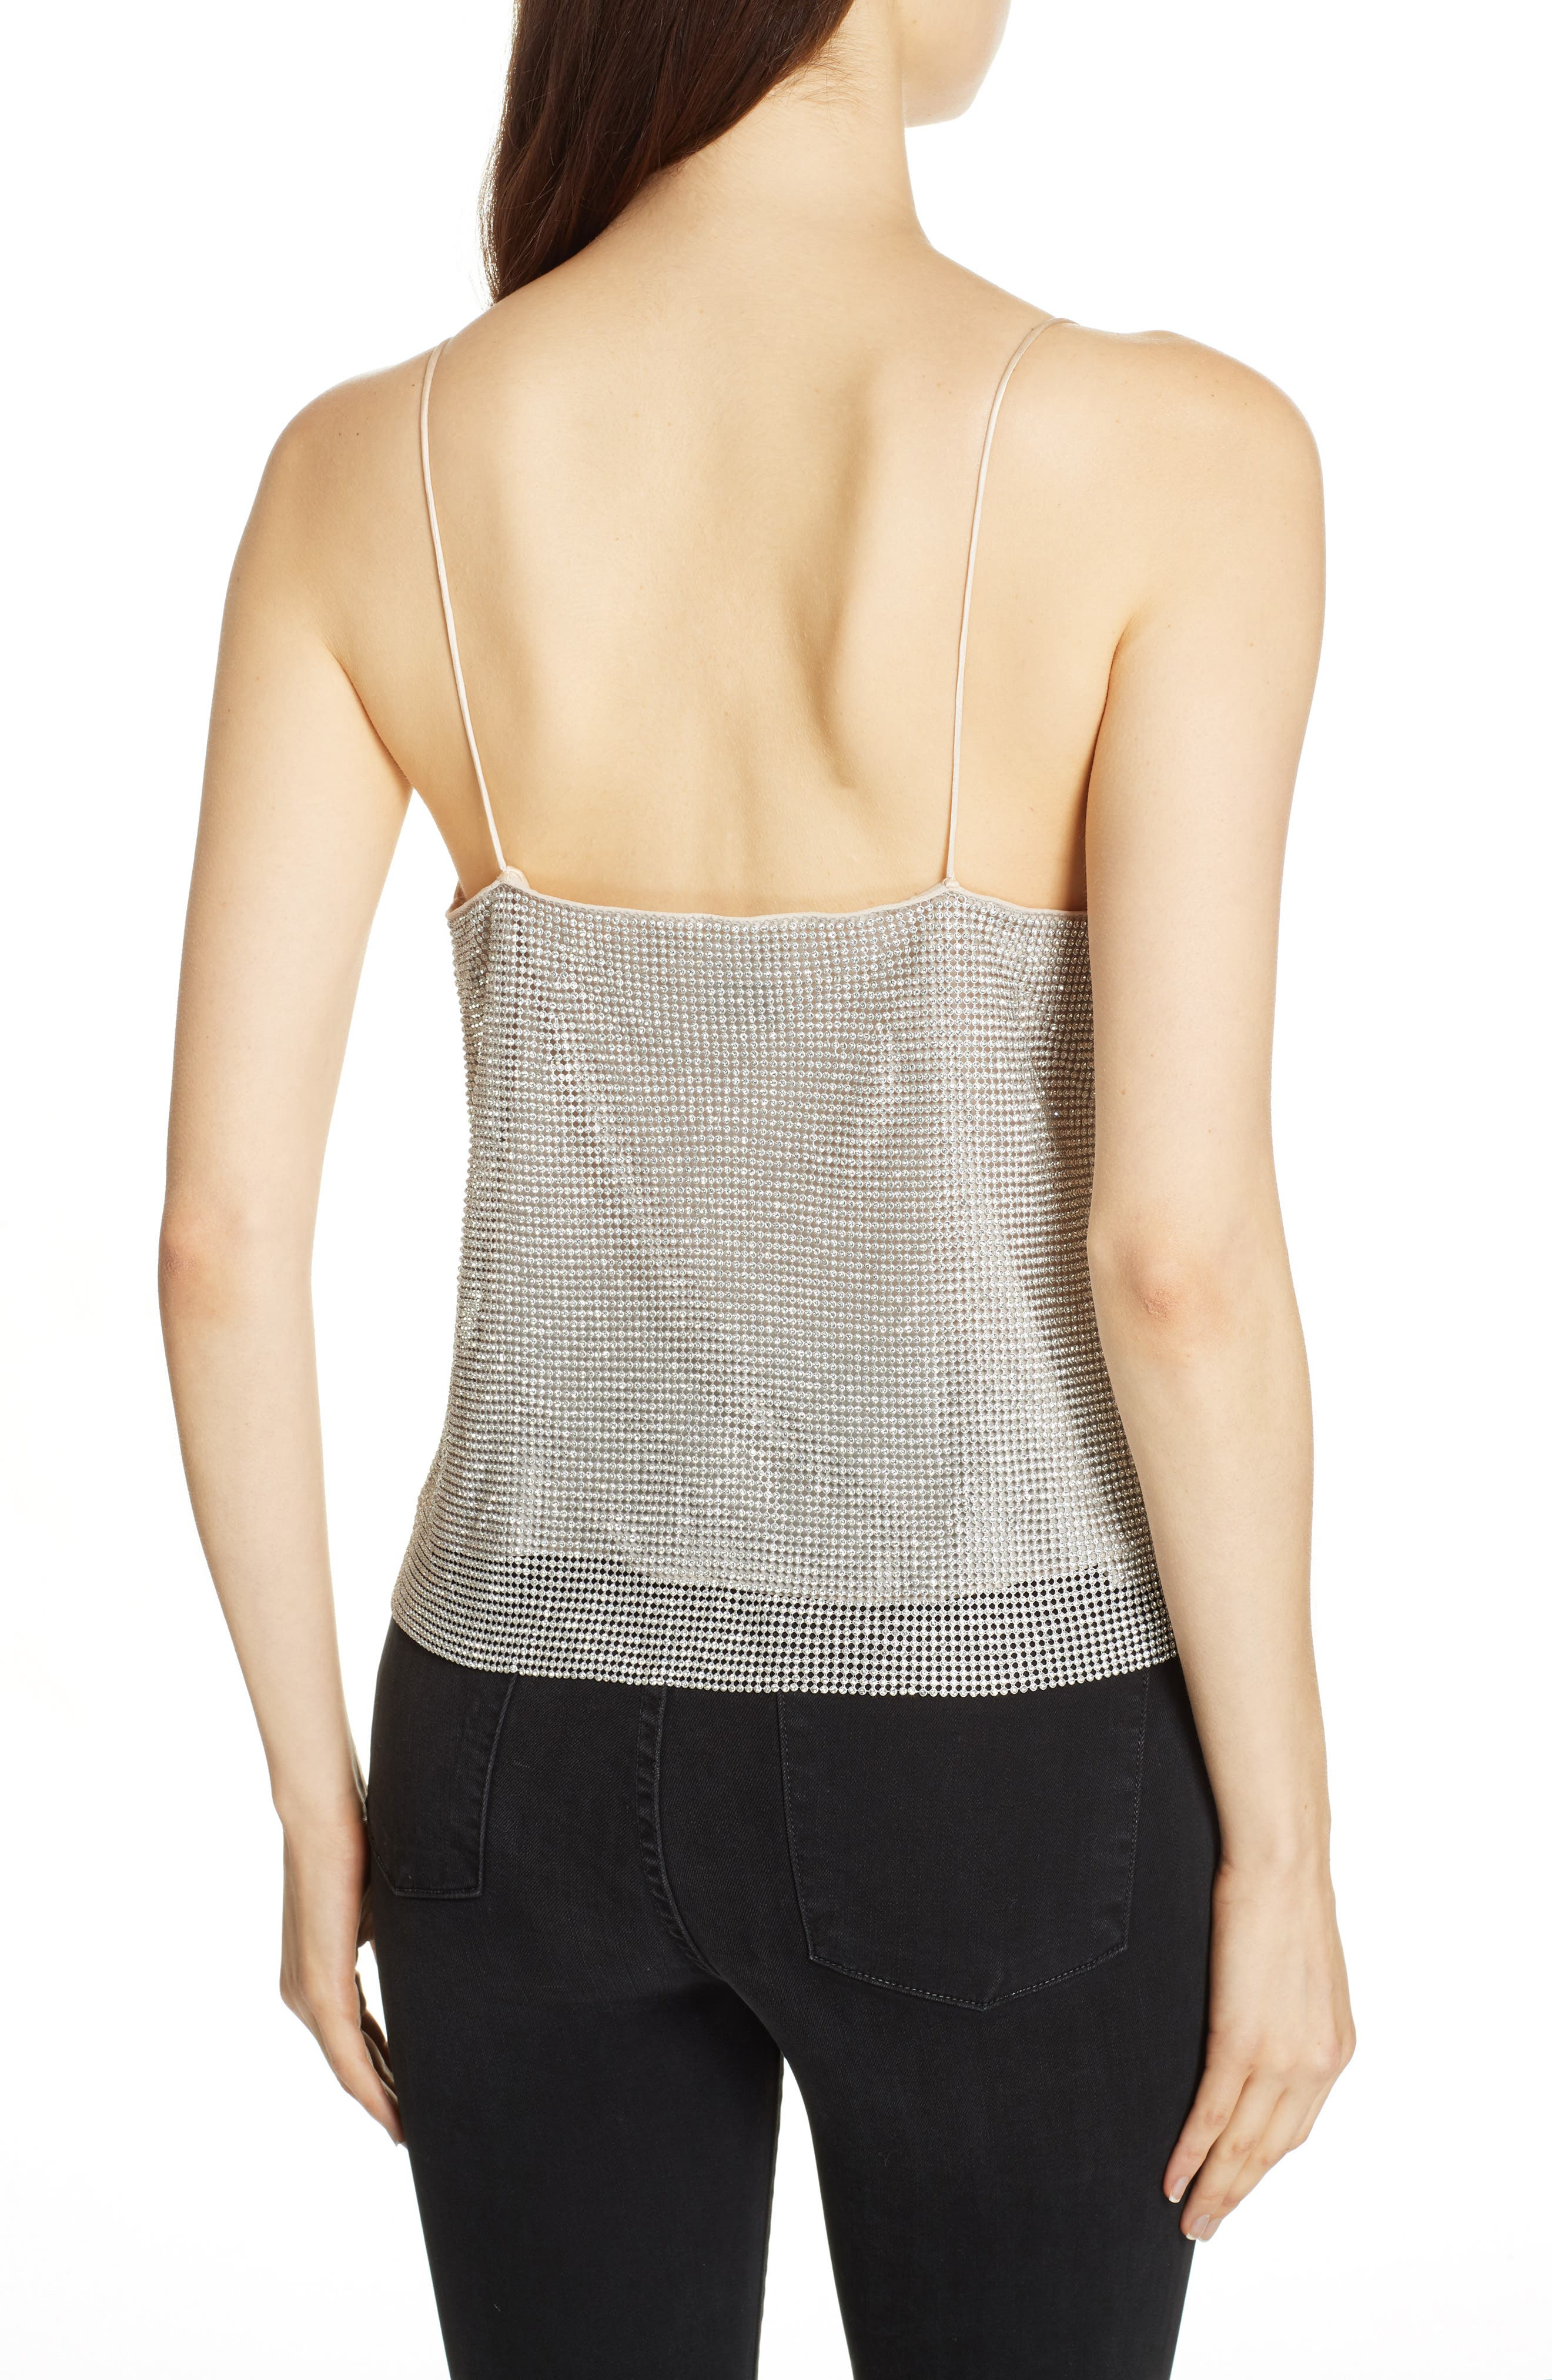 Harmon Crystal Chainmaille Camisole,                             Alternate thumbnail 2, color,                             SILVER/ CHAINMAIL